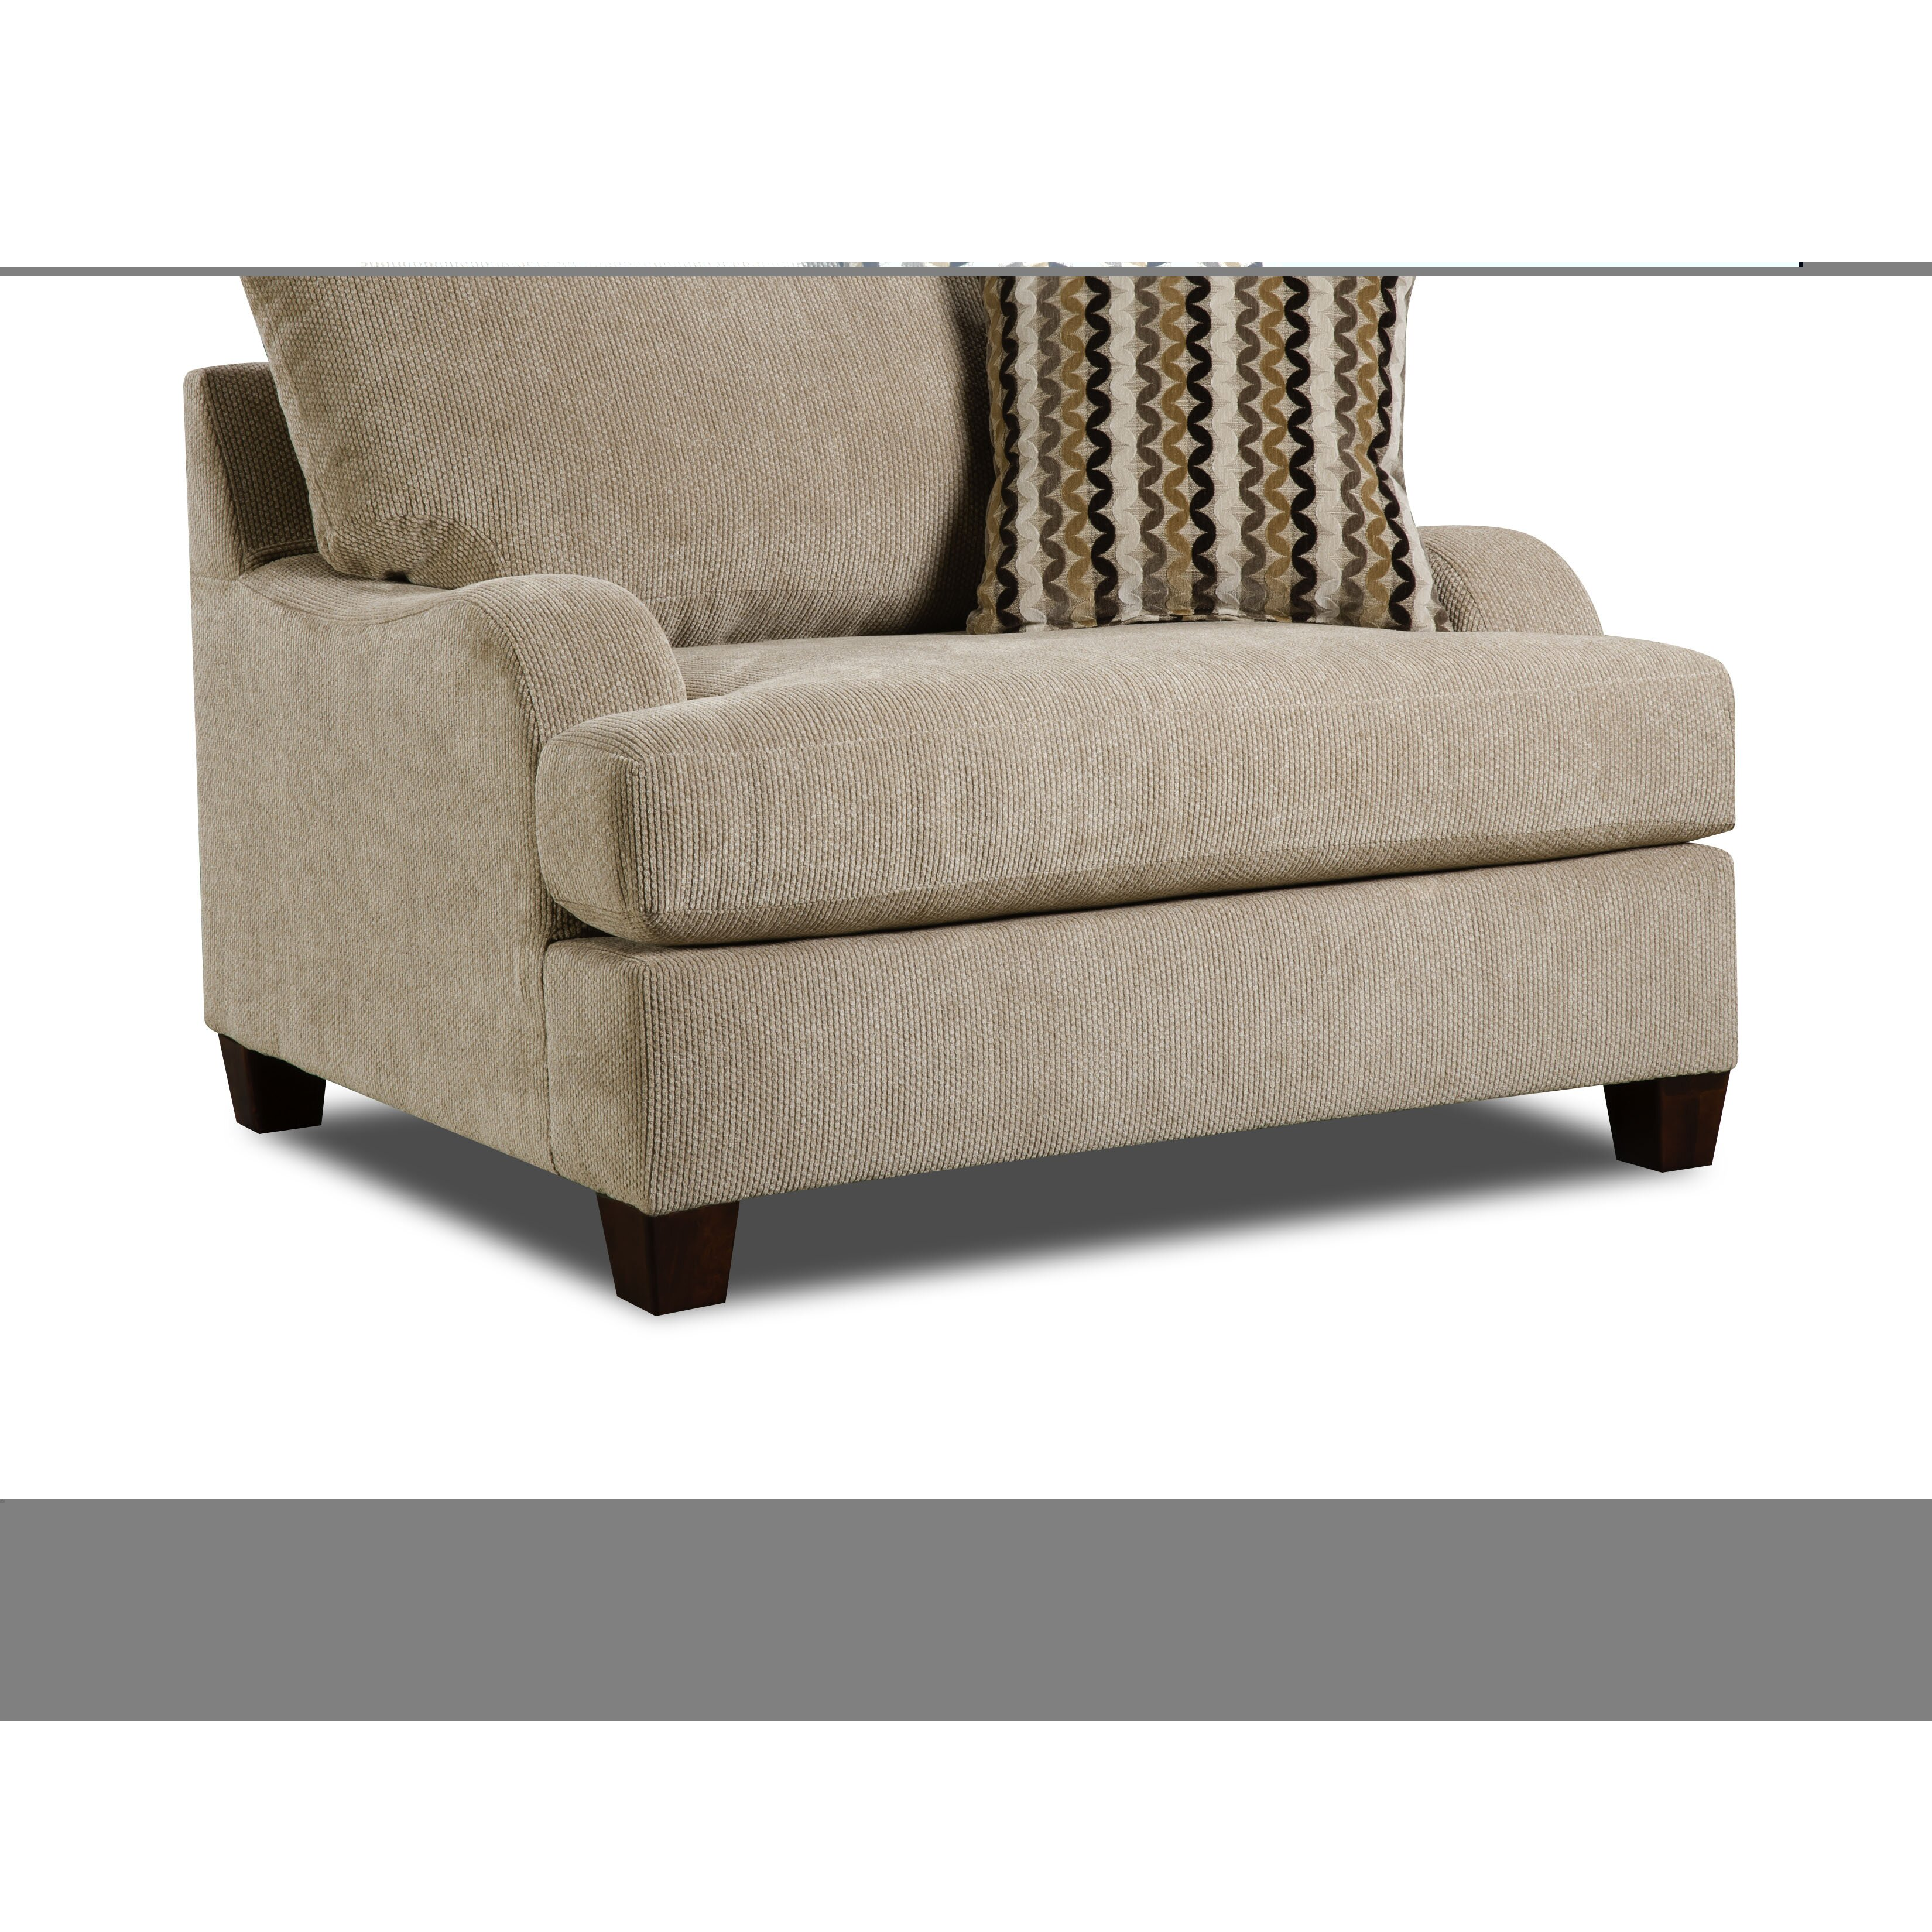 Lesley Bedroom Furniture Collection Red Barrel Studio Matherville Living Room Collection Reviews